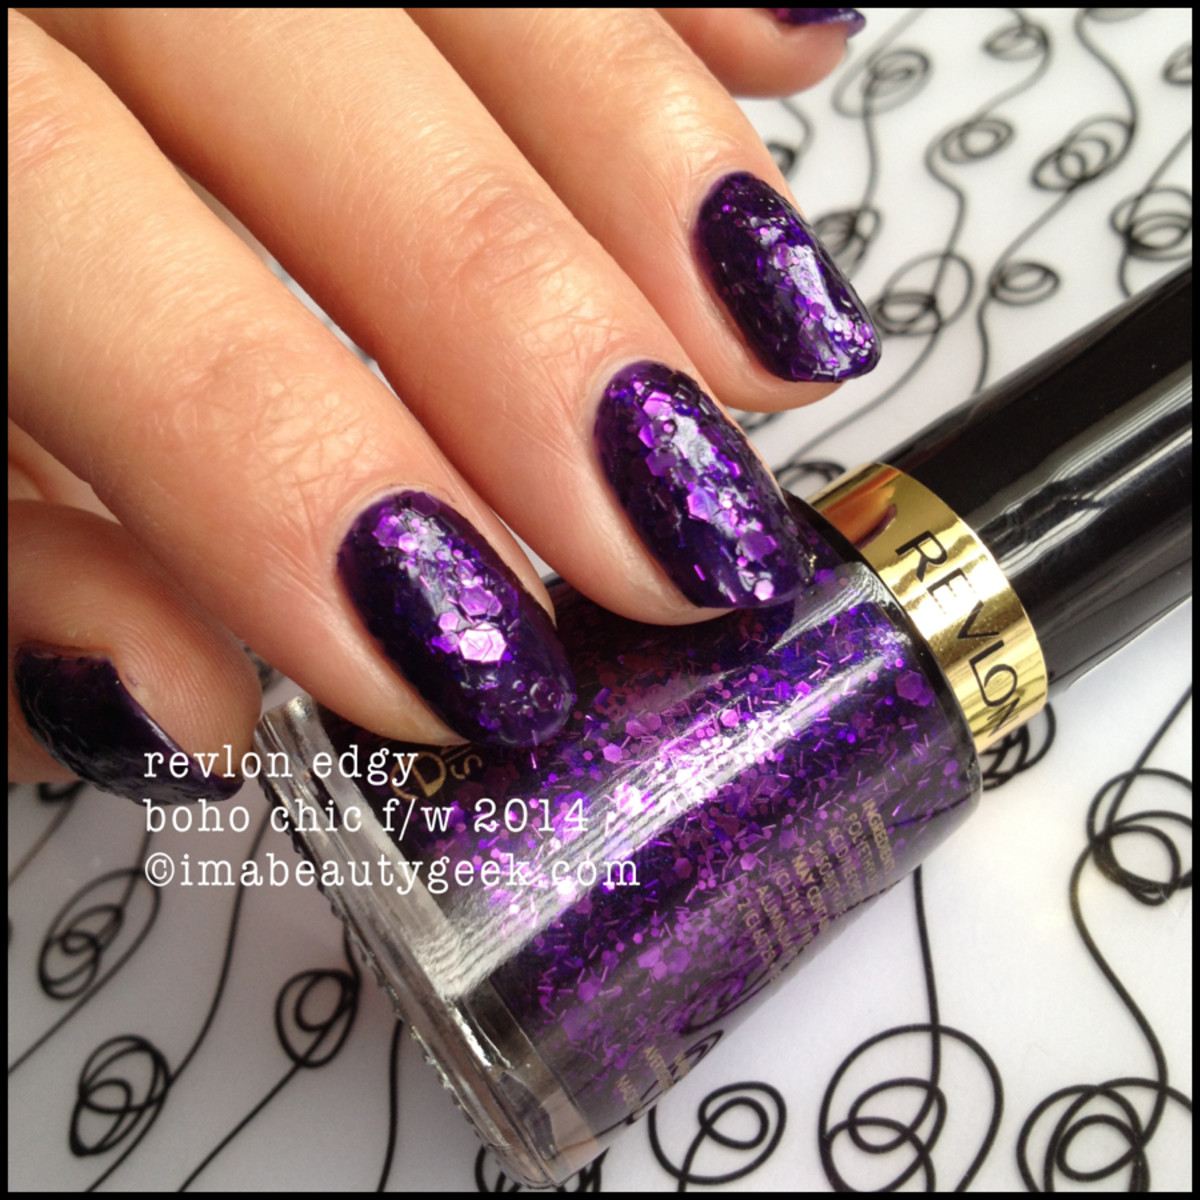 Revlon Boho Chic Limited Edition Edgy no top coat